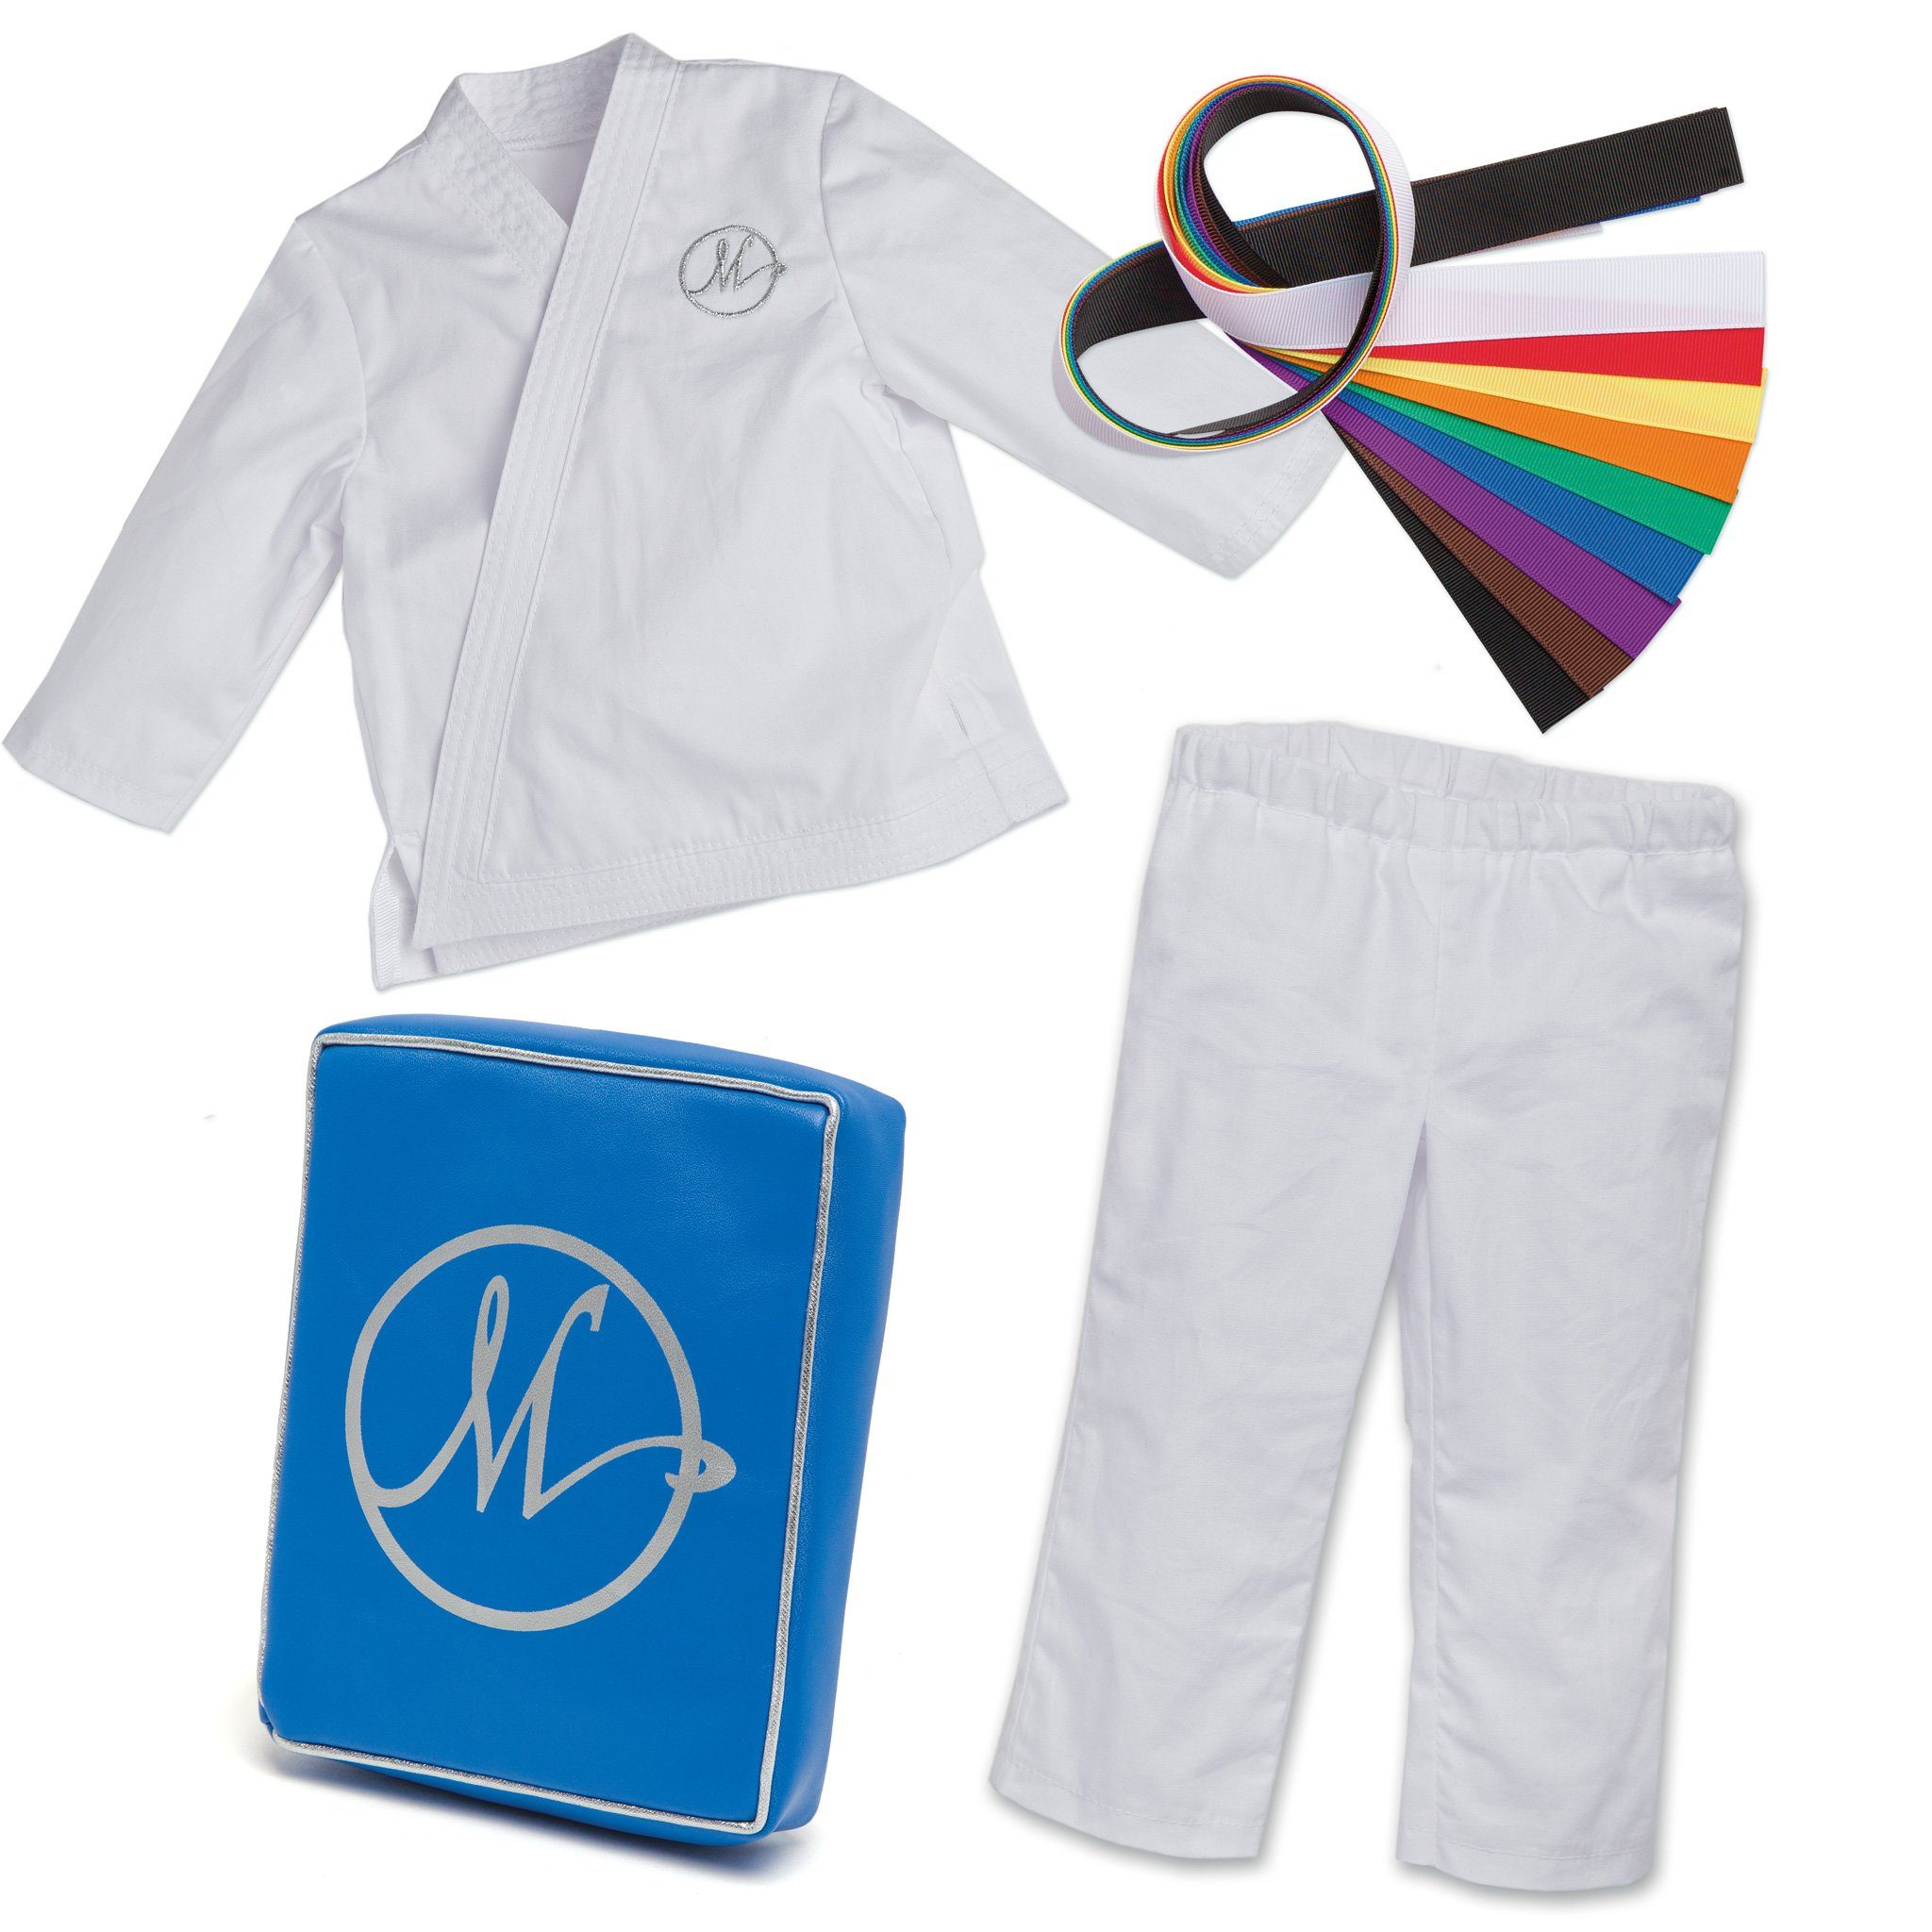 Karate Kicks gi white jacket and pants, with 9 coloured belts, and a blue kickpad fits all 18 inch dolls.